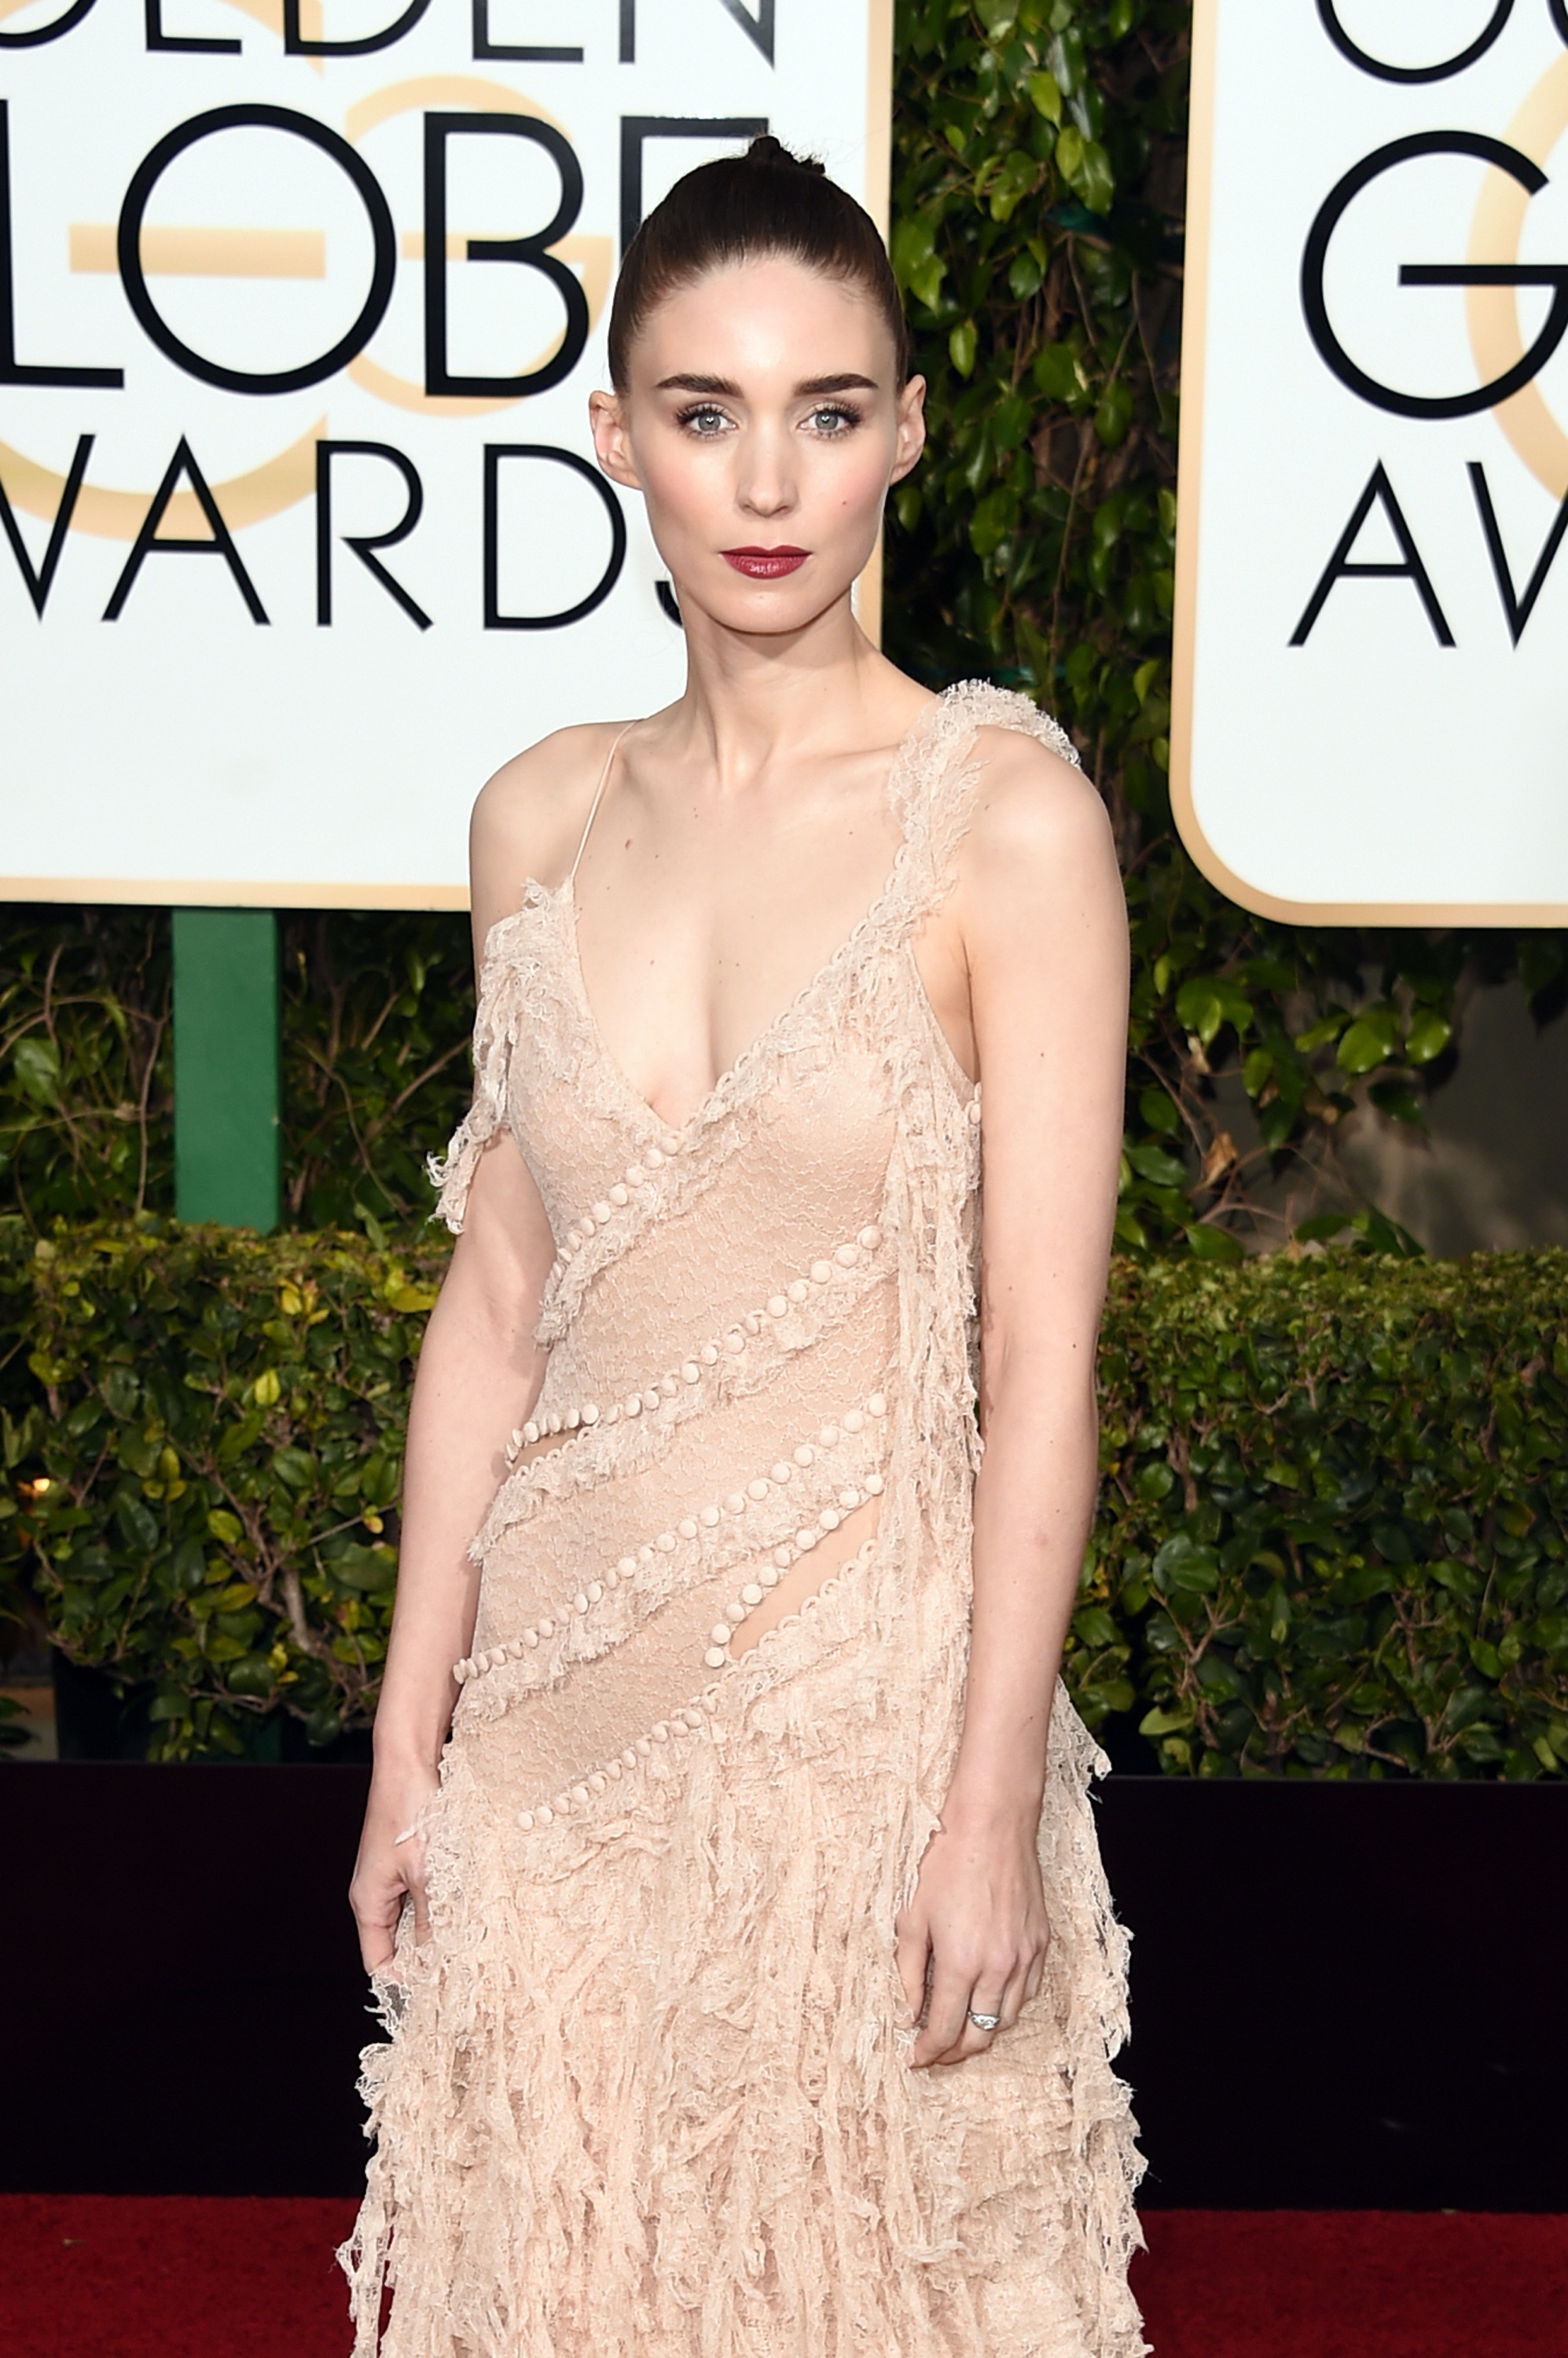 Rooney Mara at Golden Globes Awards 2016